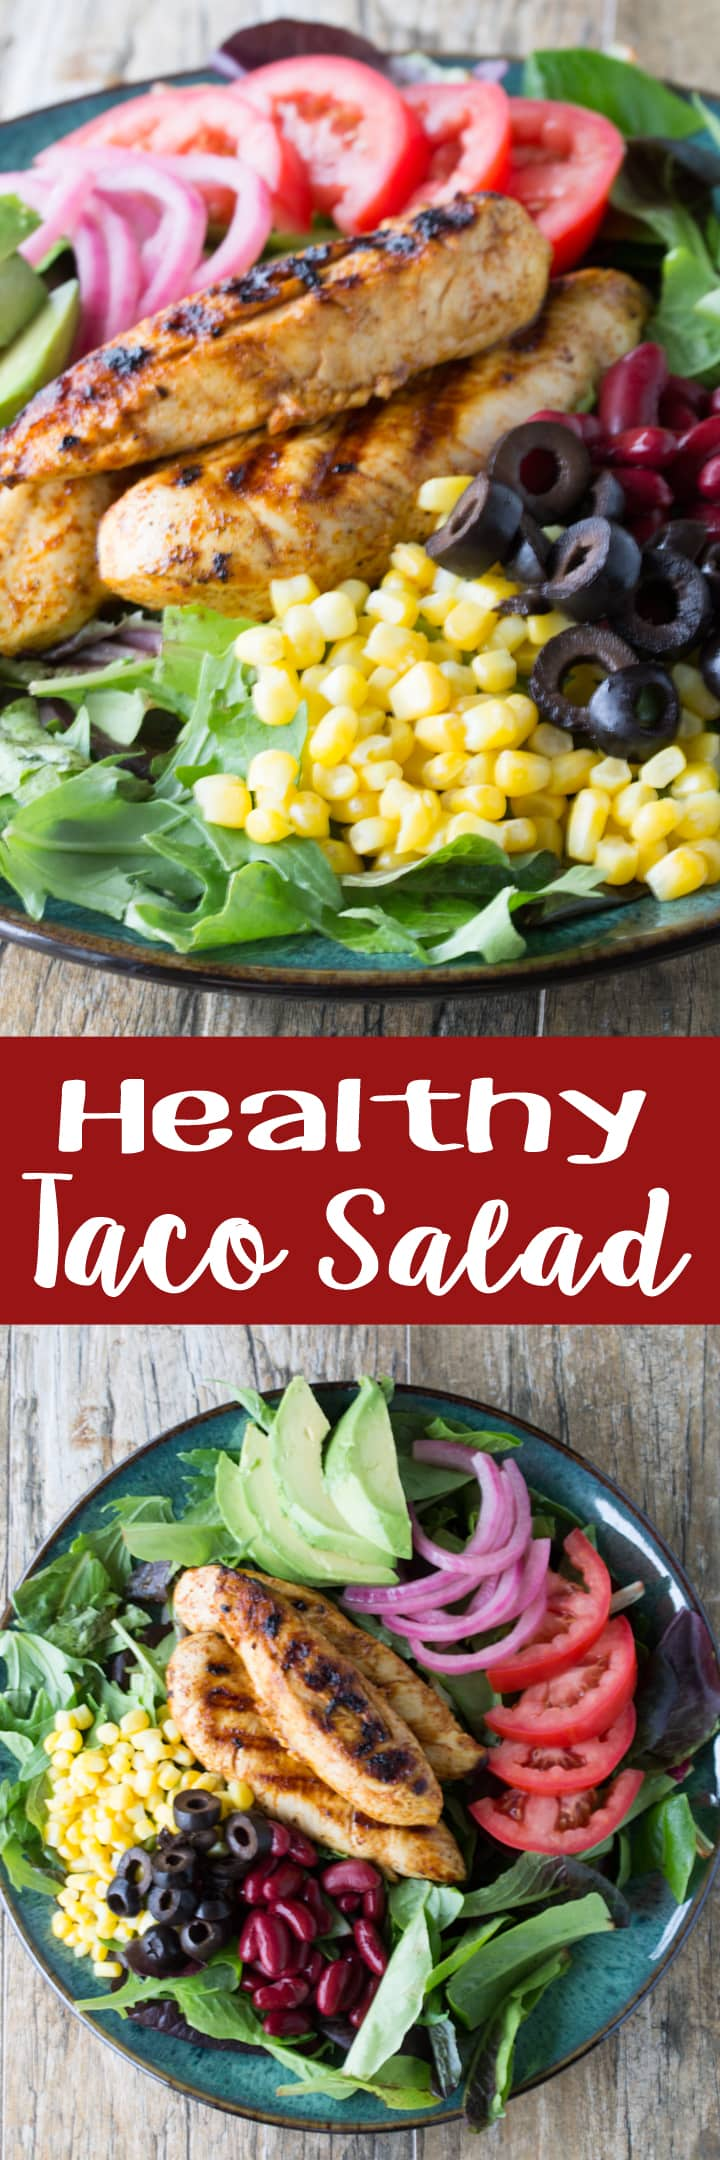 All the flavors of tacos in a healthy salad with a tasty cilantro-lime vinaigrette. Try my Healthy Taco Salad with Cilantro-Lime Vinaigrette!